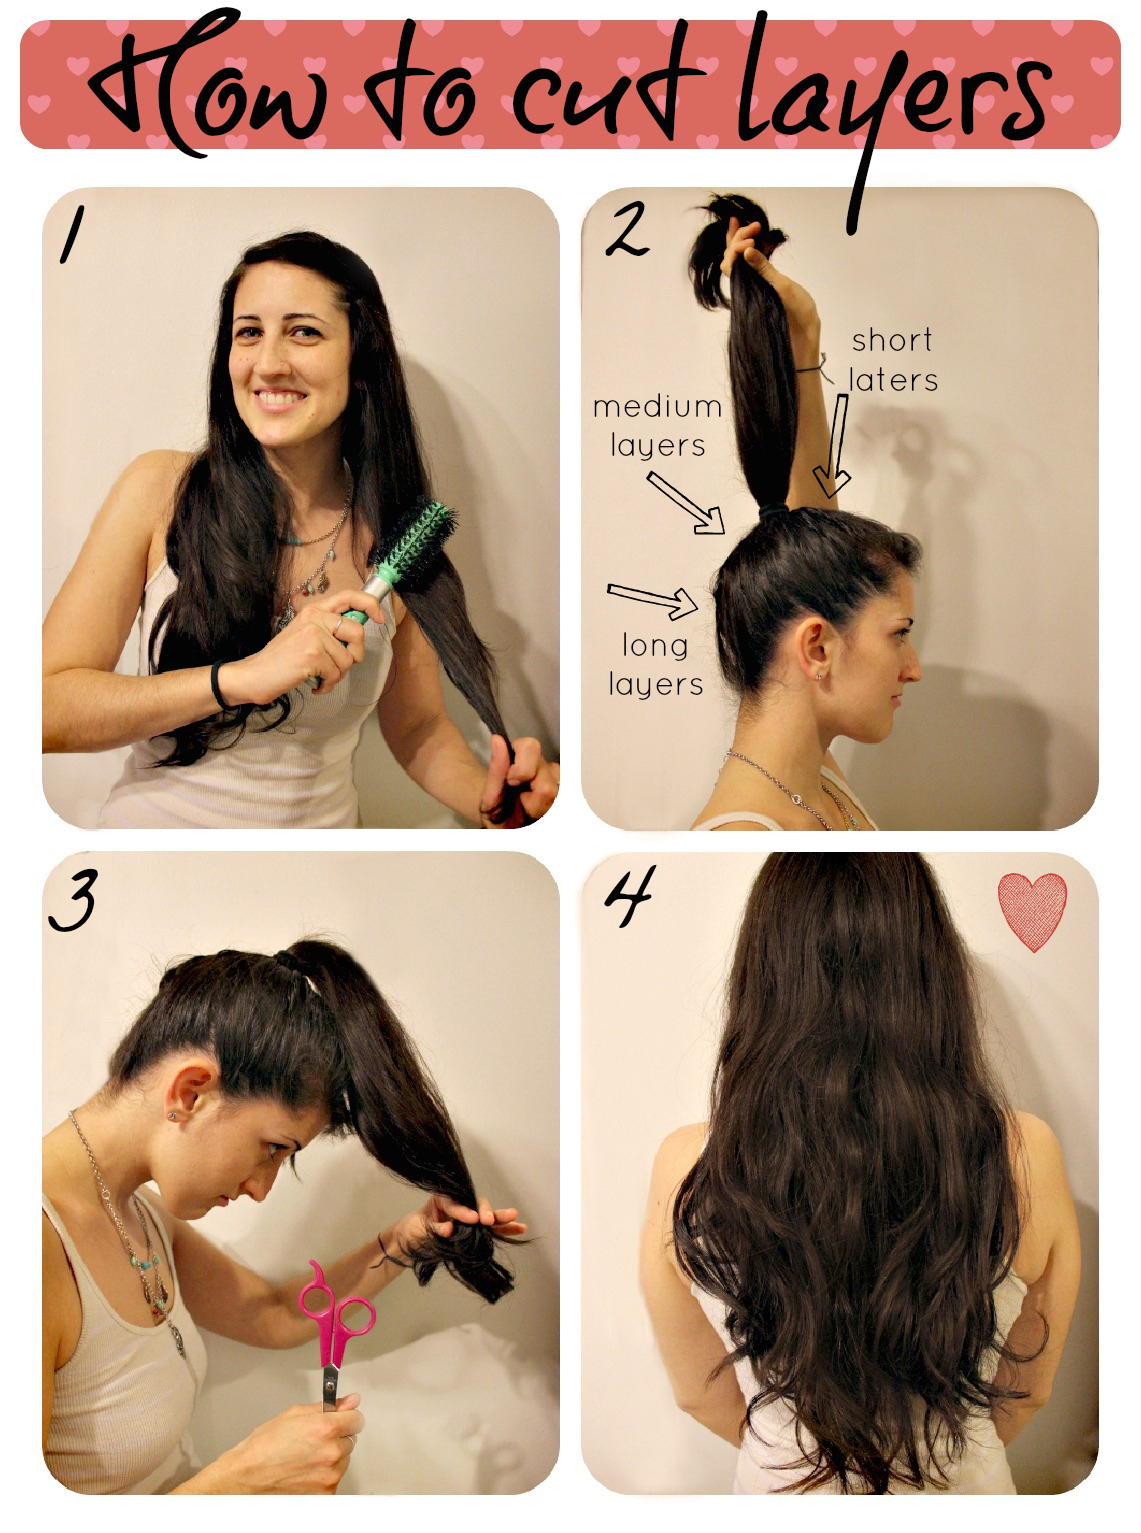 How To Hair Cut : Don?t forget to follow me on Facebook !! Check it out if you want to ...